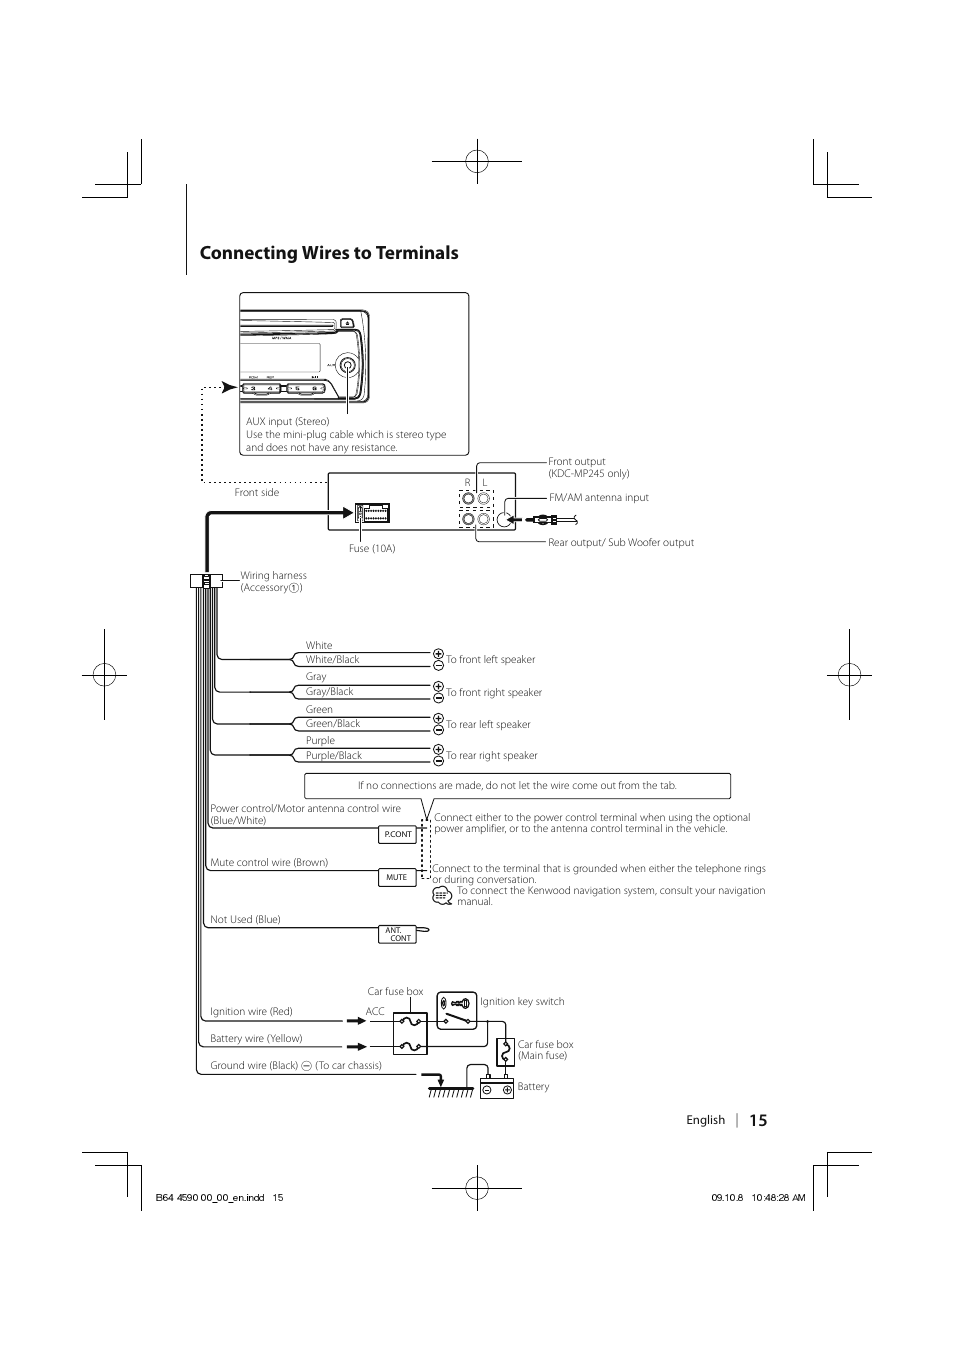 hight resolution of connecting wires to terminals kenwood kdc mp245 user manual page schematic diagram connecting wires to terminals